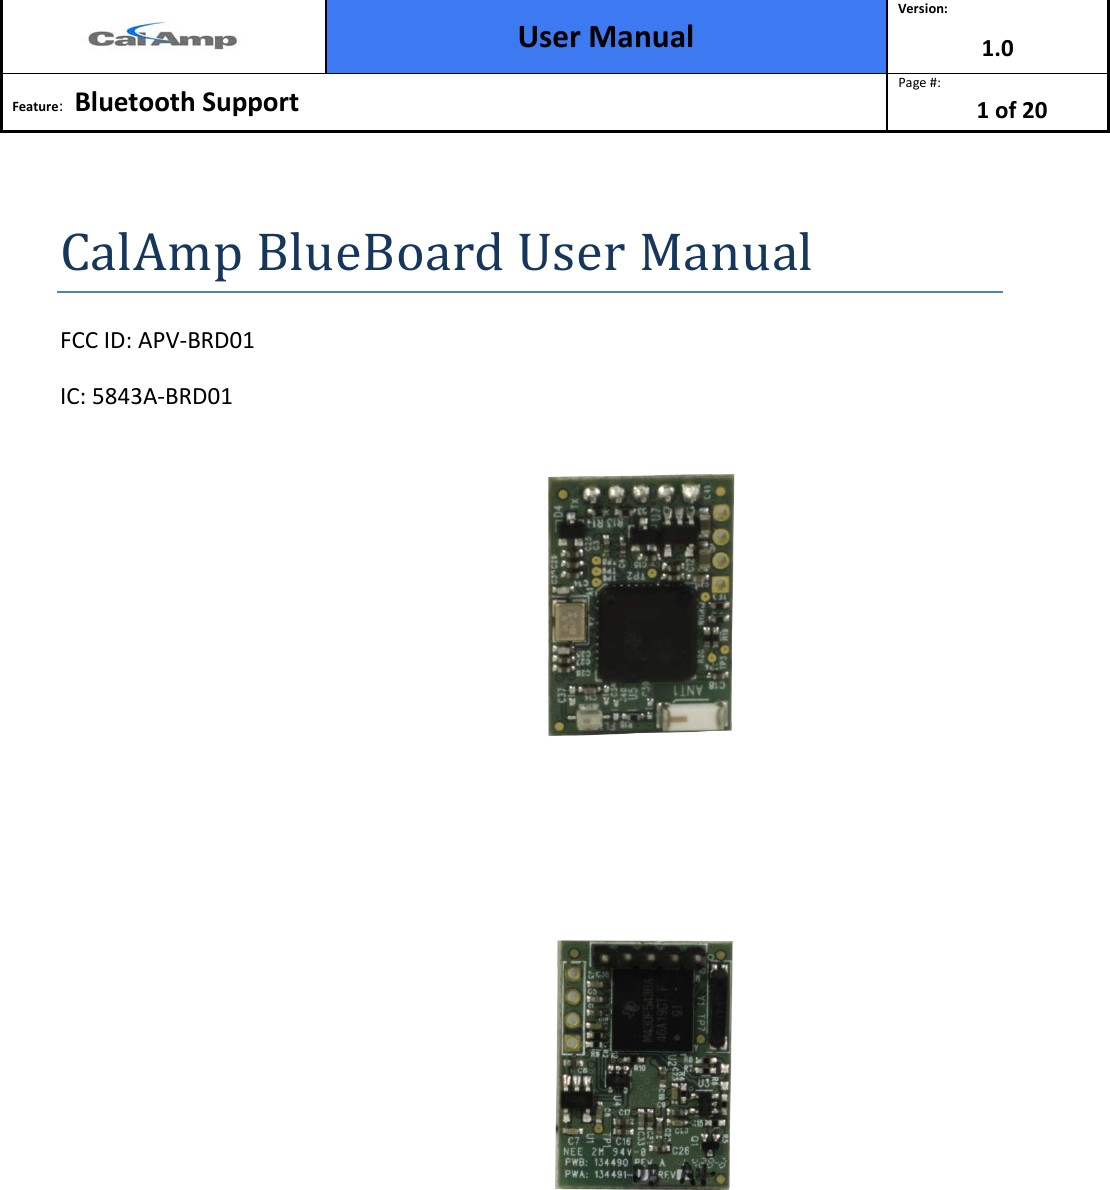 BDR01 Bluetooth and BTLE device User Manual Configuration App Note CalAmp